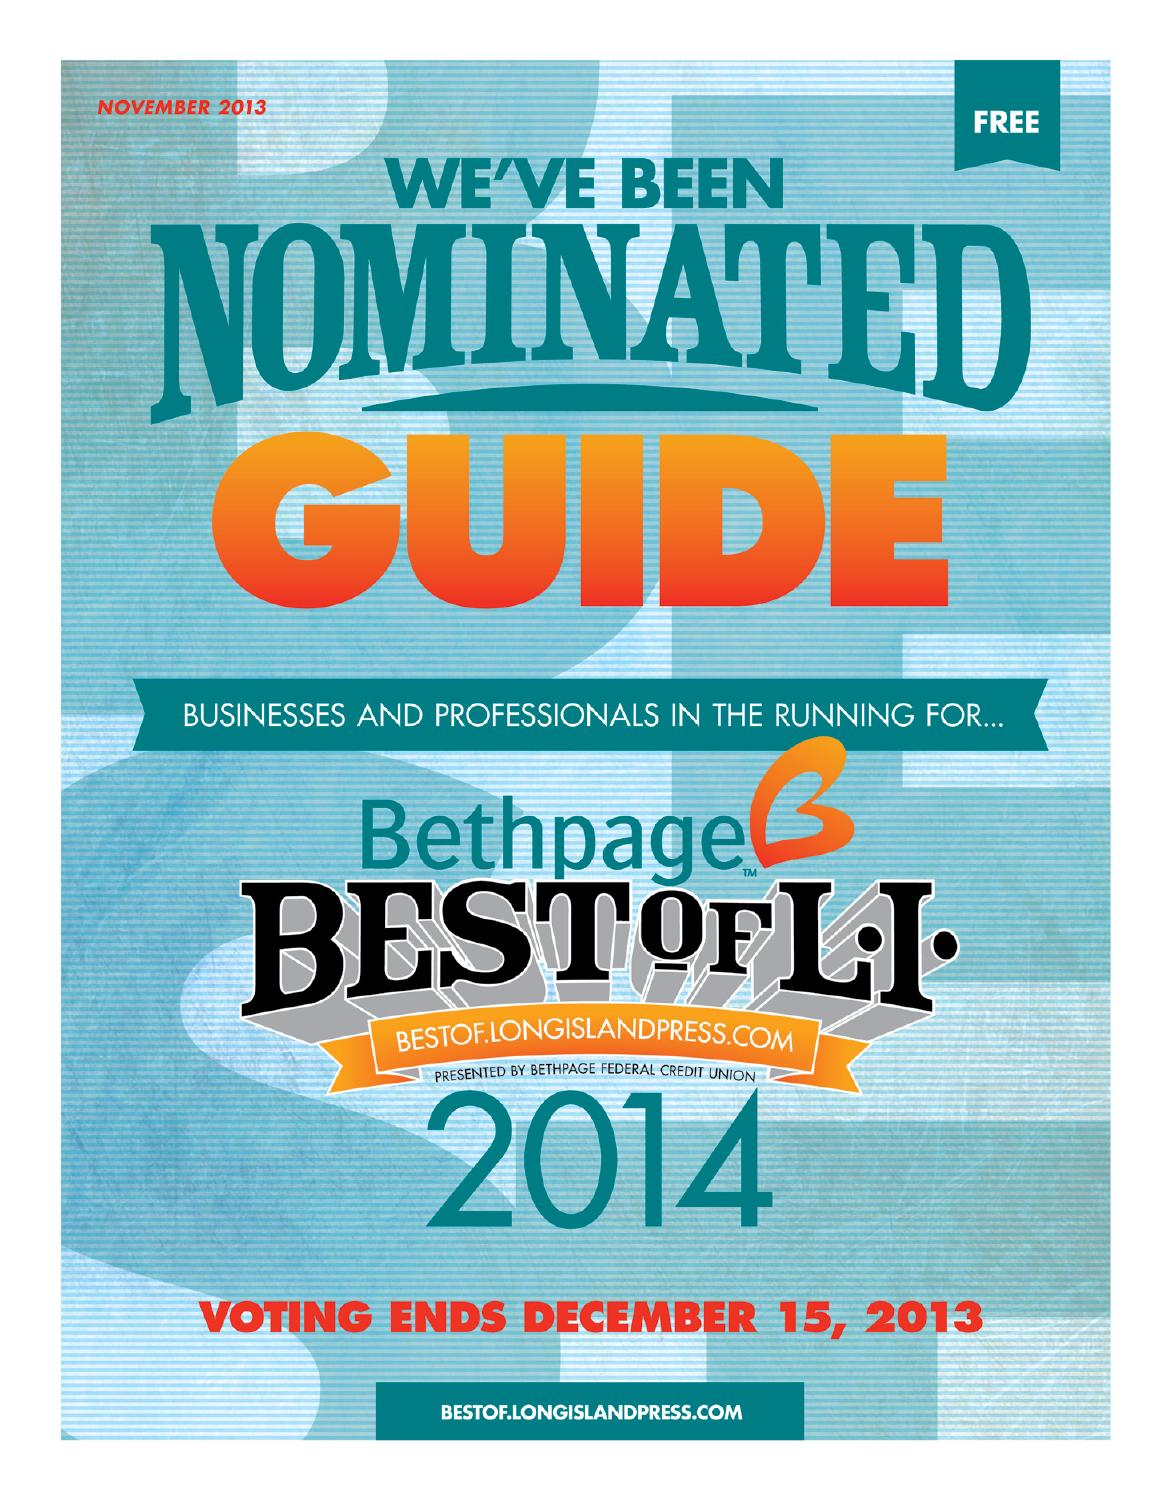 bethpage best of li nomination guide by private label issuu bethpage best of l i 2014 we ve been nominated